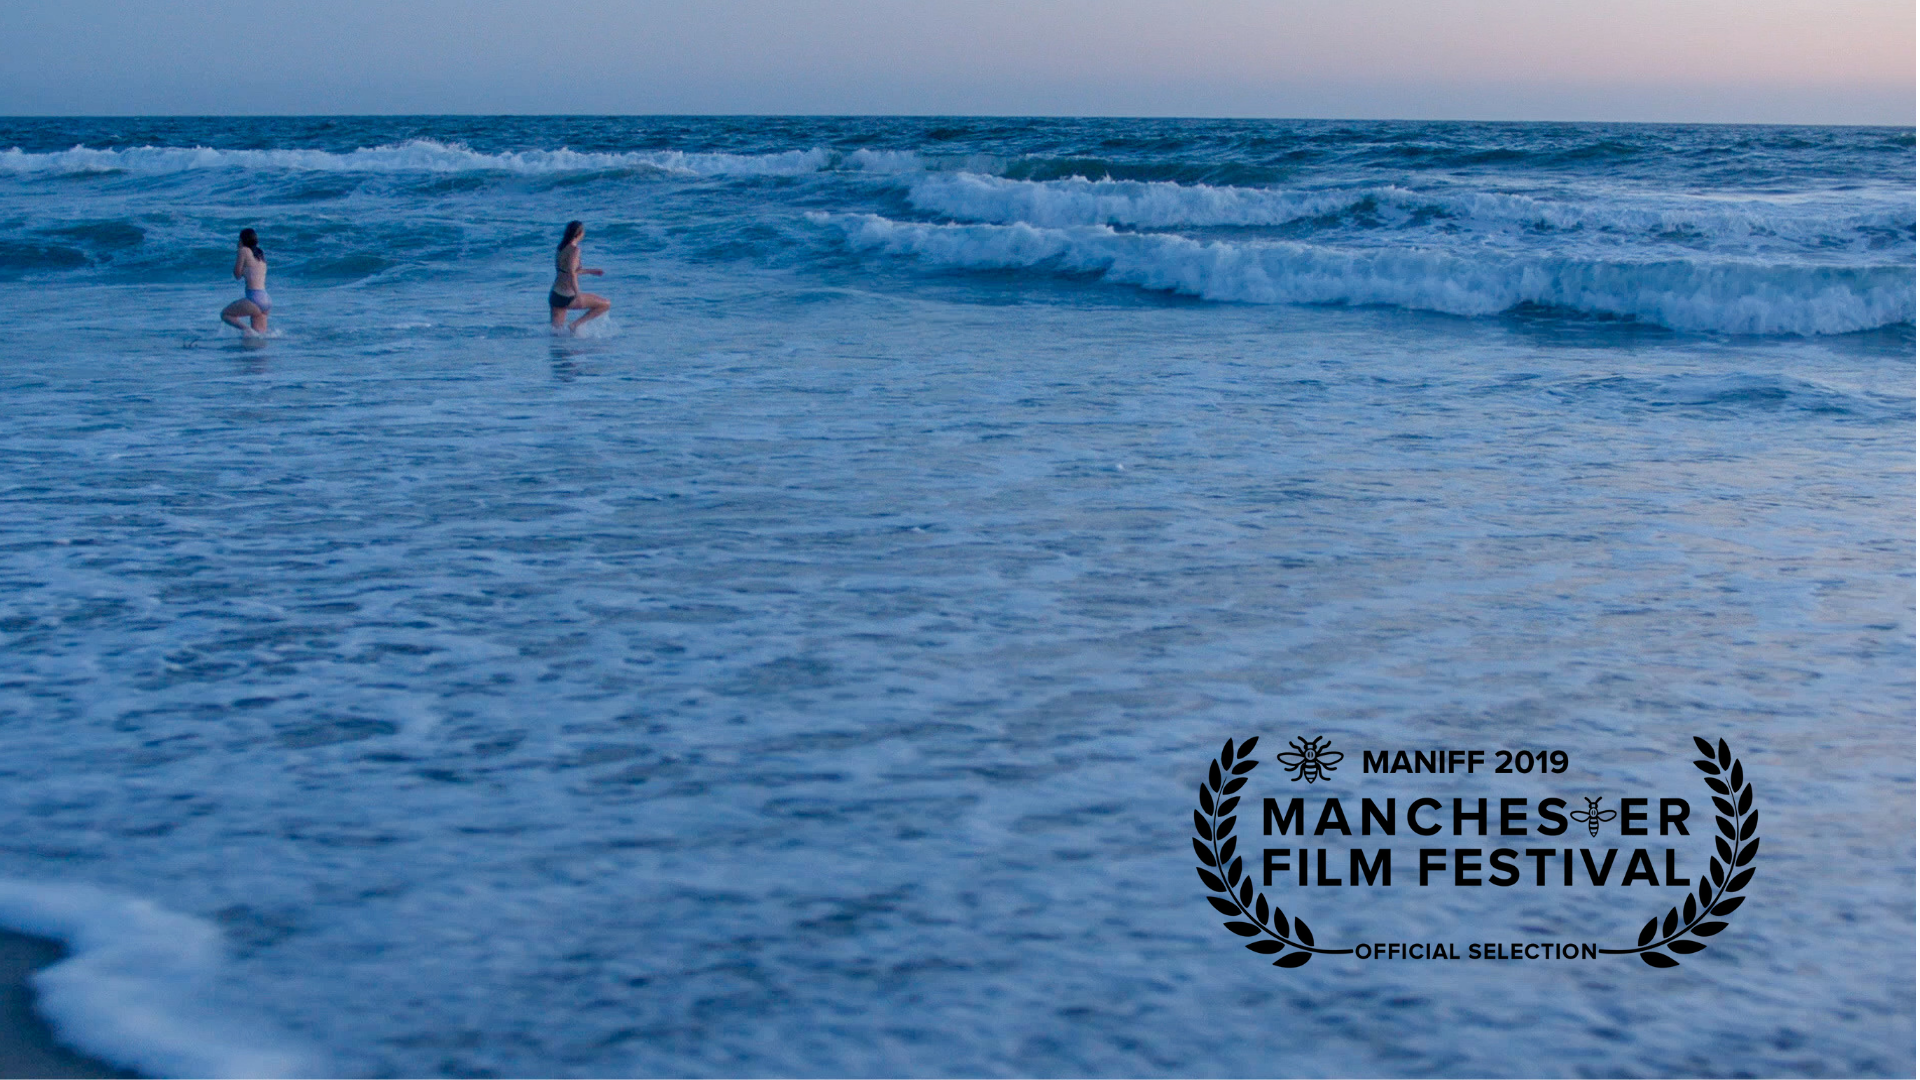 TLATF's UK Premiere / 2019 Manchester Film Festival - Too Long at the Fair is an Official Selection of the 2019 Manchester Film Festival.Click here for details.Screening in Shorts Session 3 on Sunday 3rd March at 5:30PM. Ticket info coming soon…